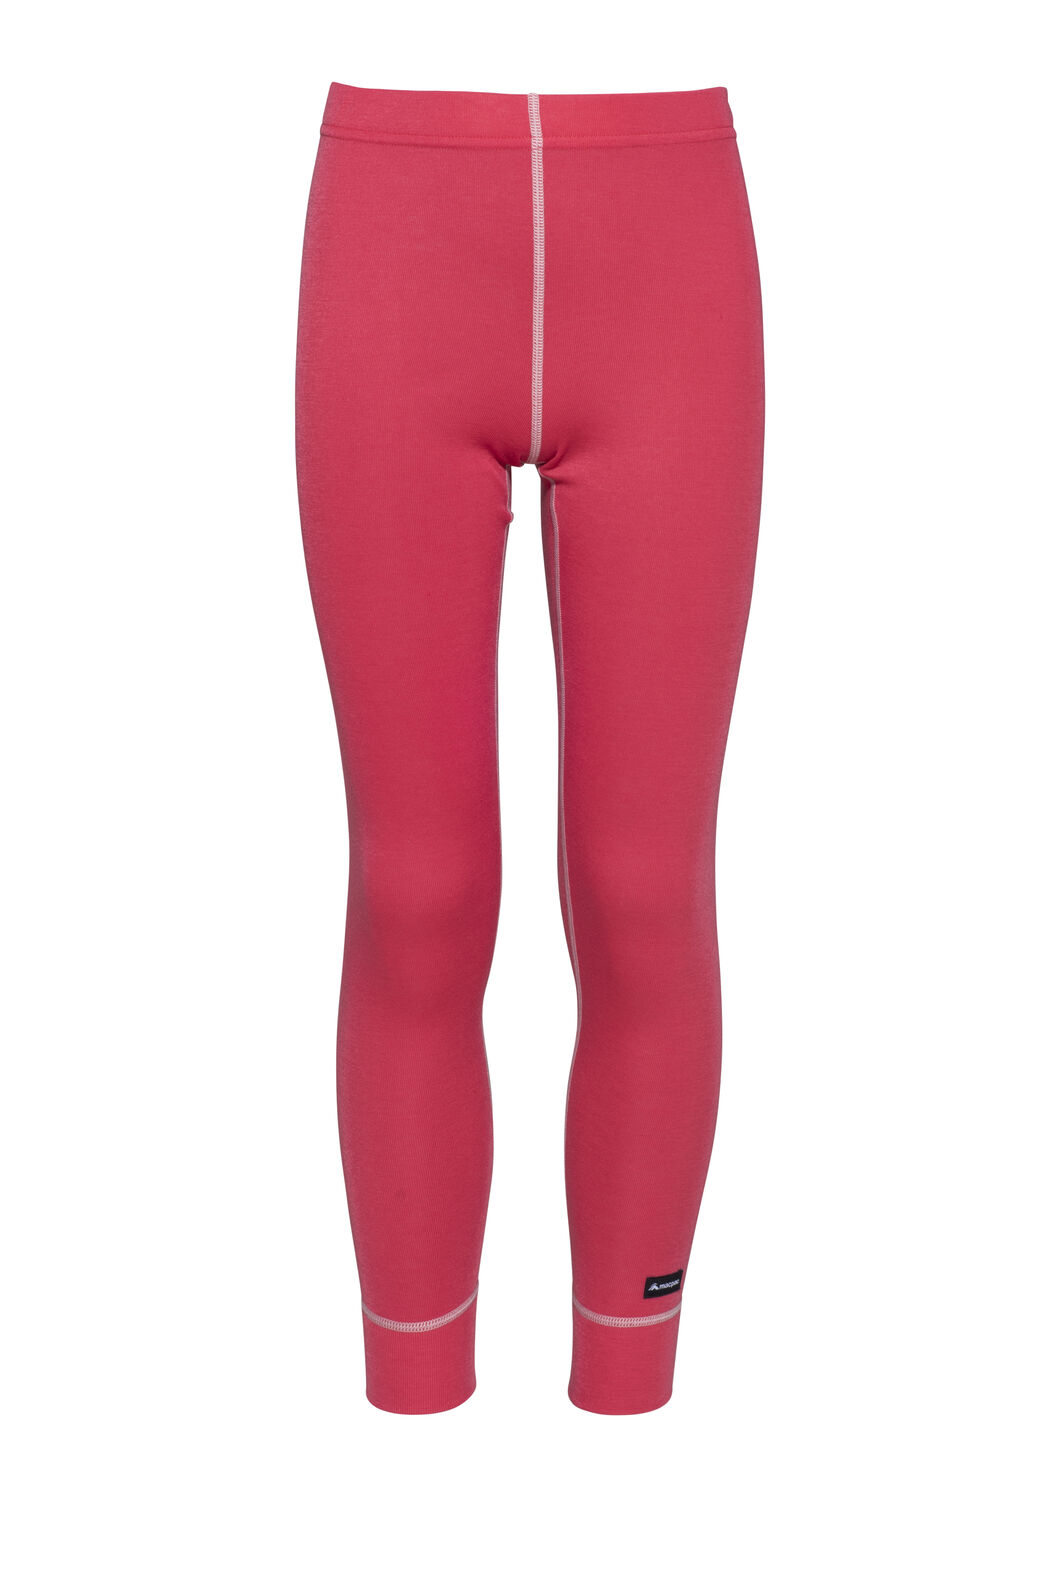 Macpac Geothermal Pants - Kids', Rouge Red, hi-res